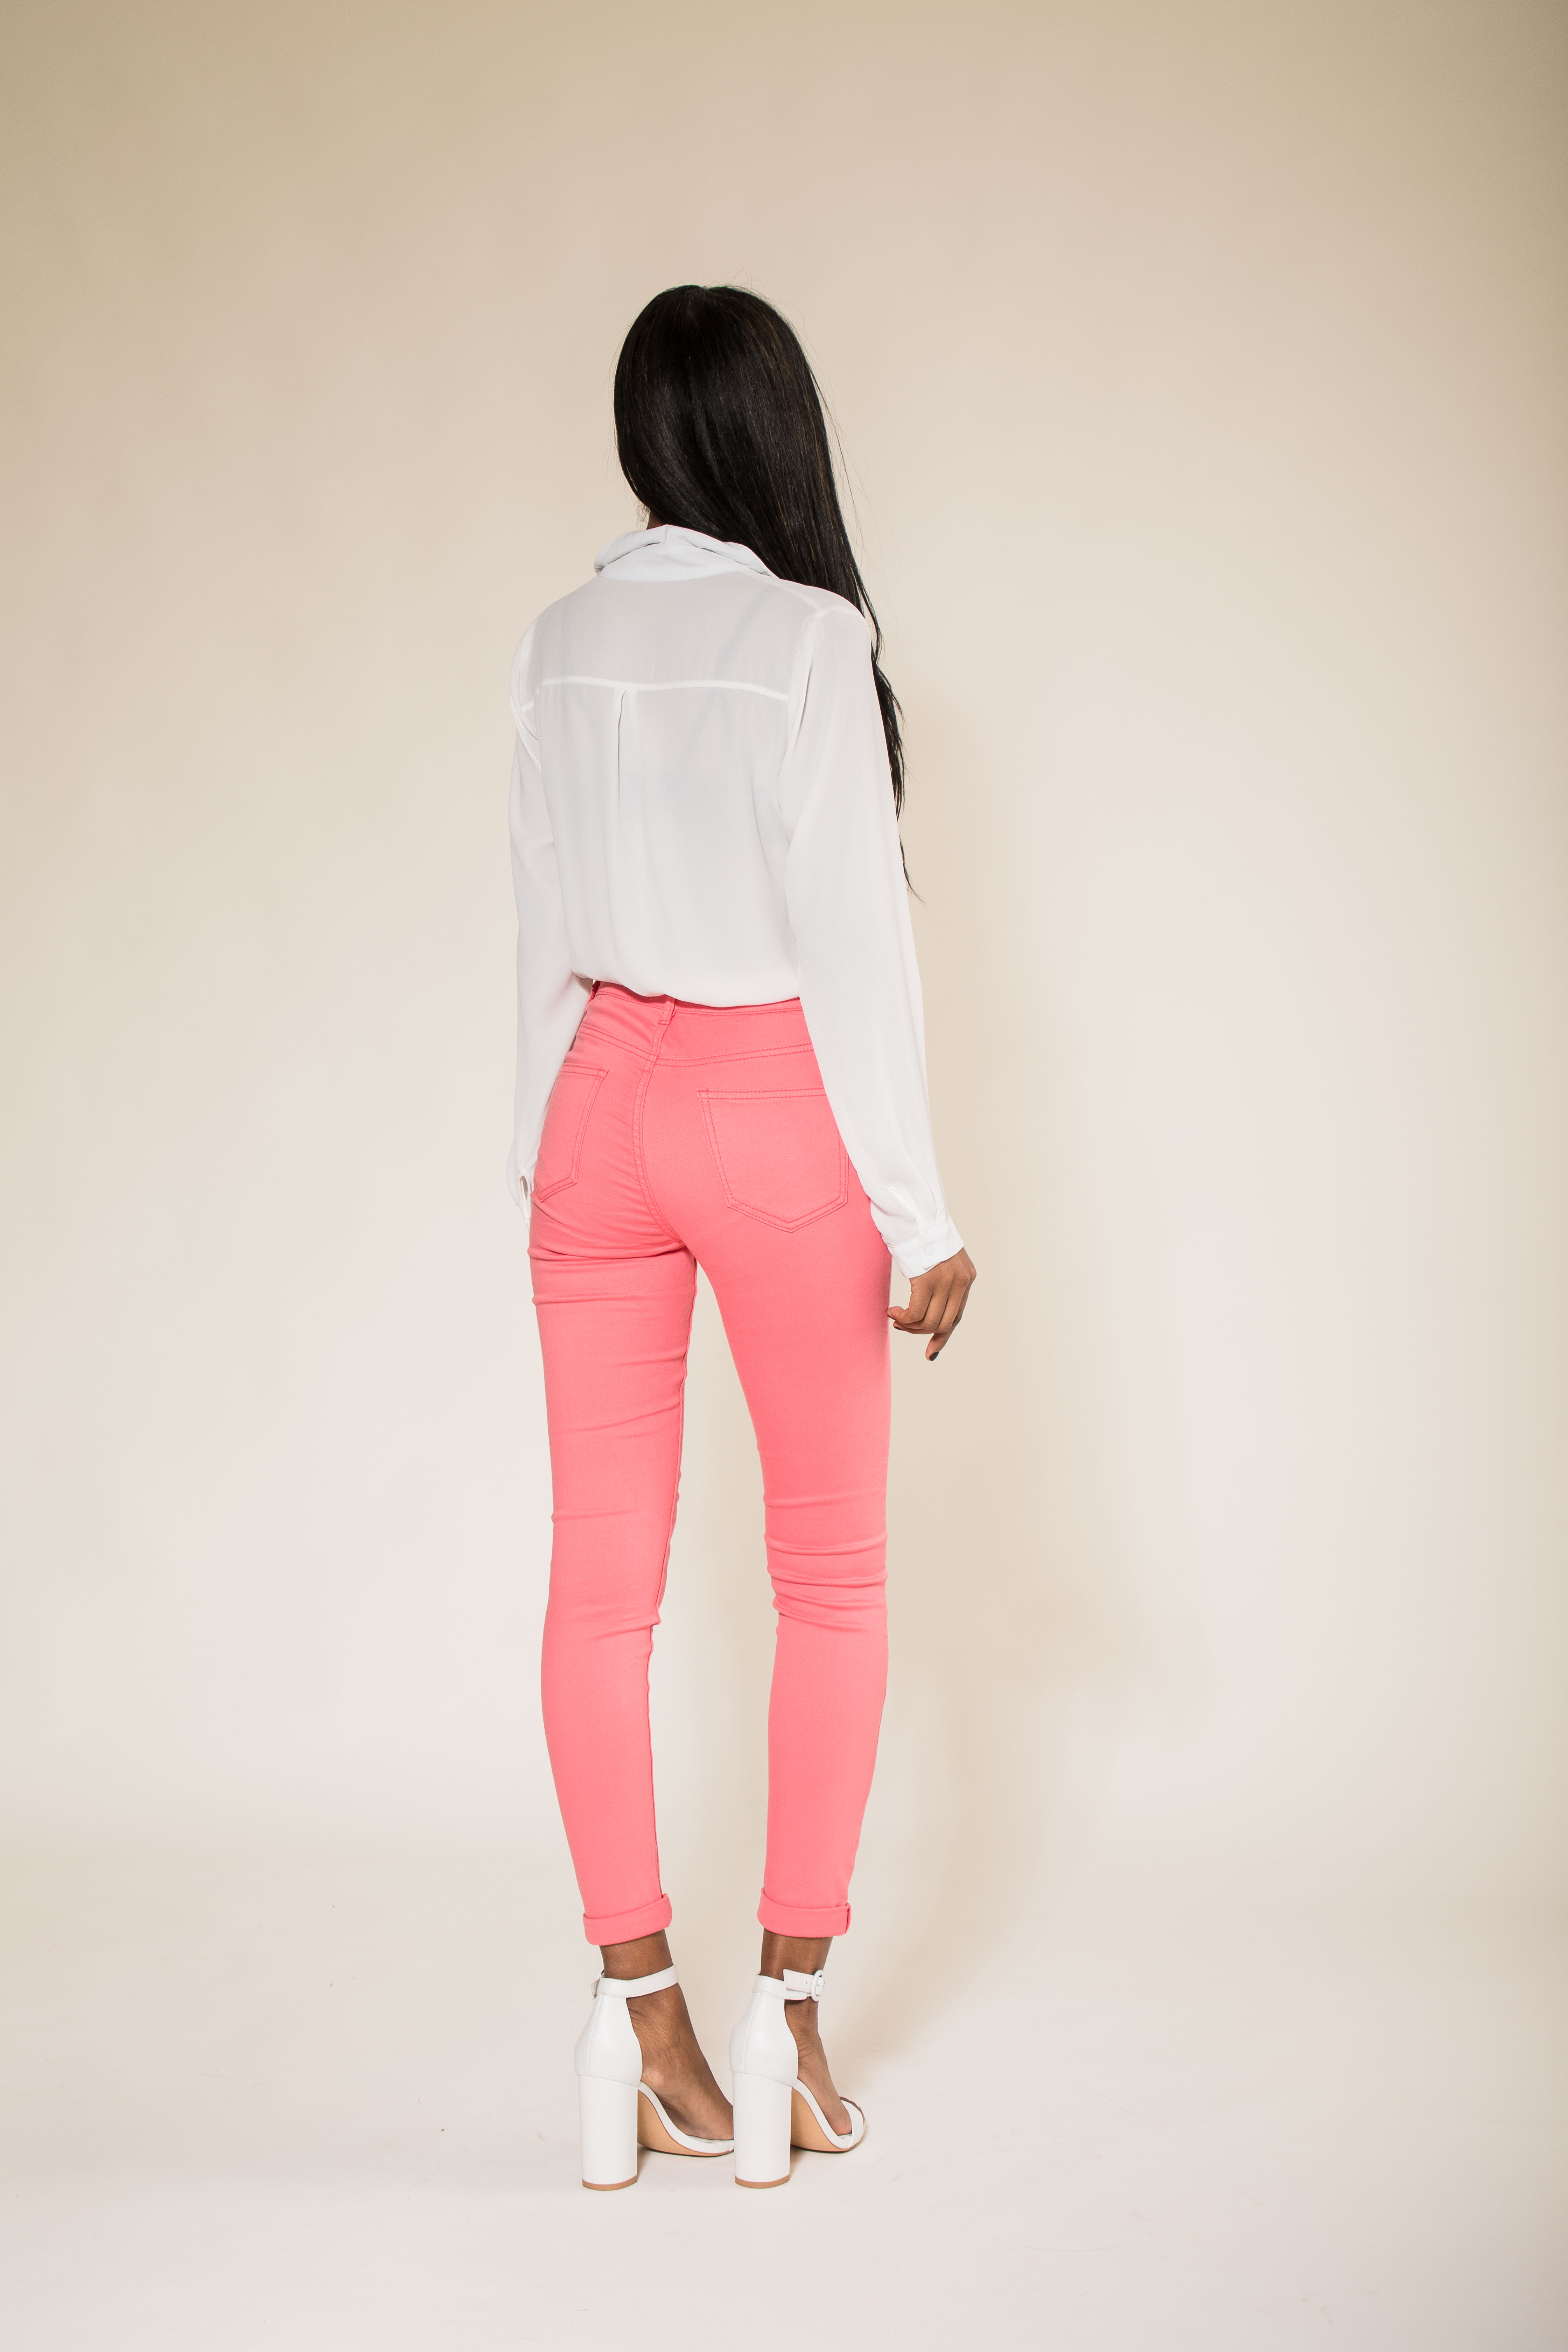 Women-High-Waisted-Jeans-Ladies-Coloured-Stretchy-jeggings-Pants-Size-6-14 thumbnail 24